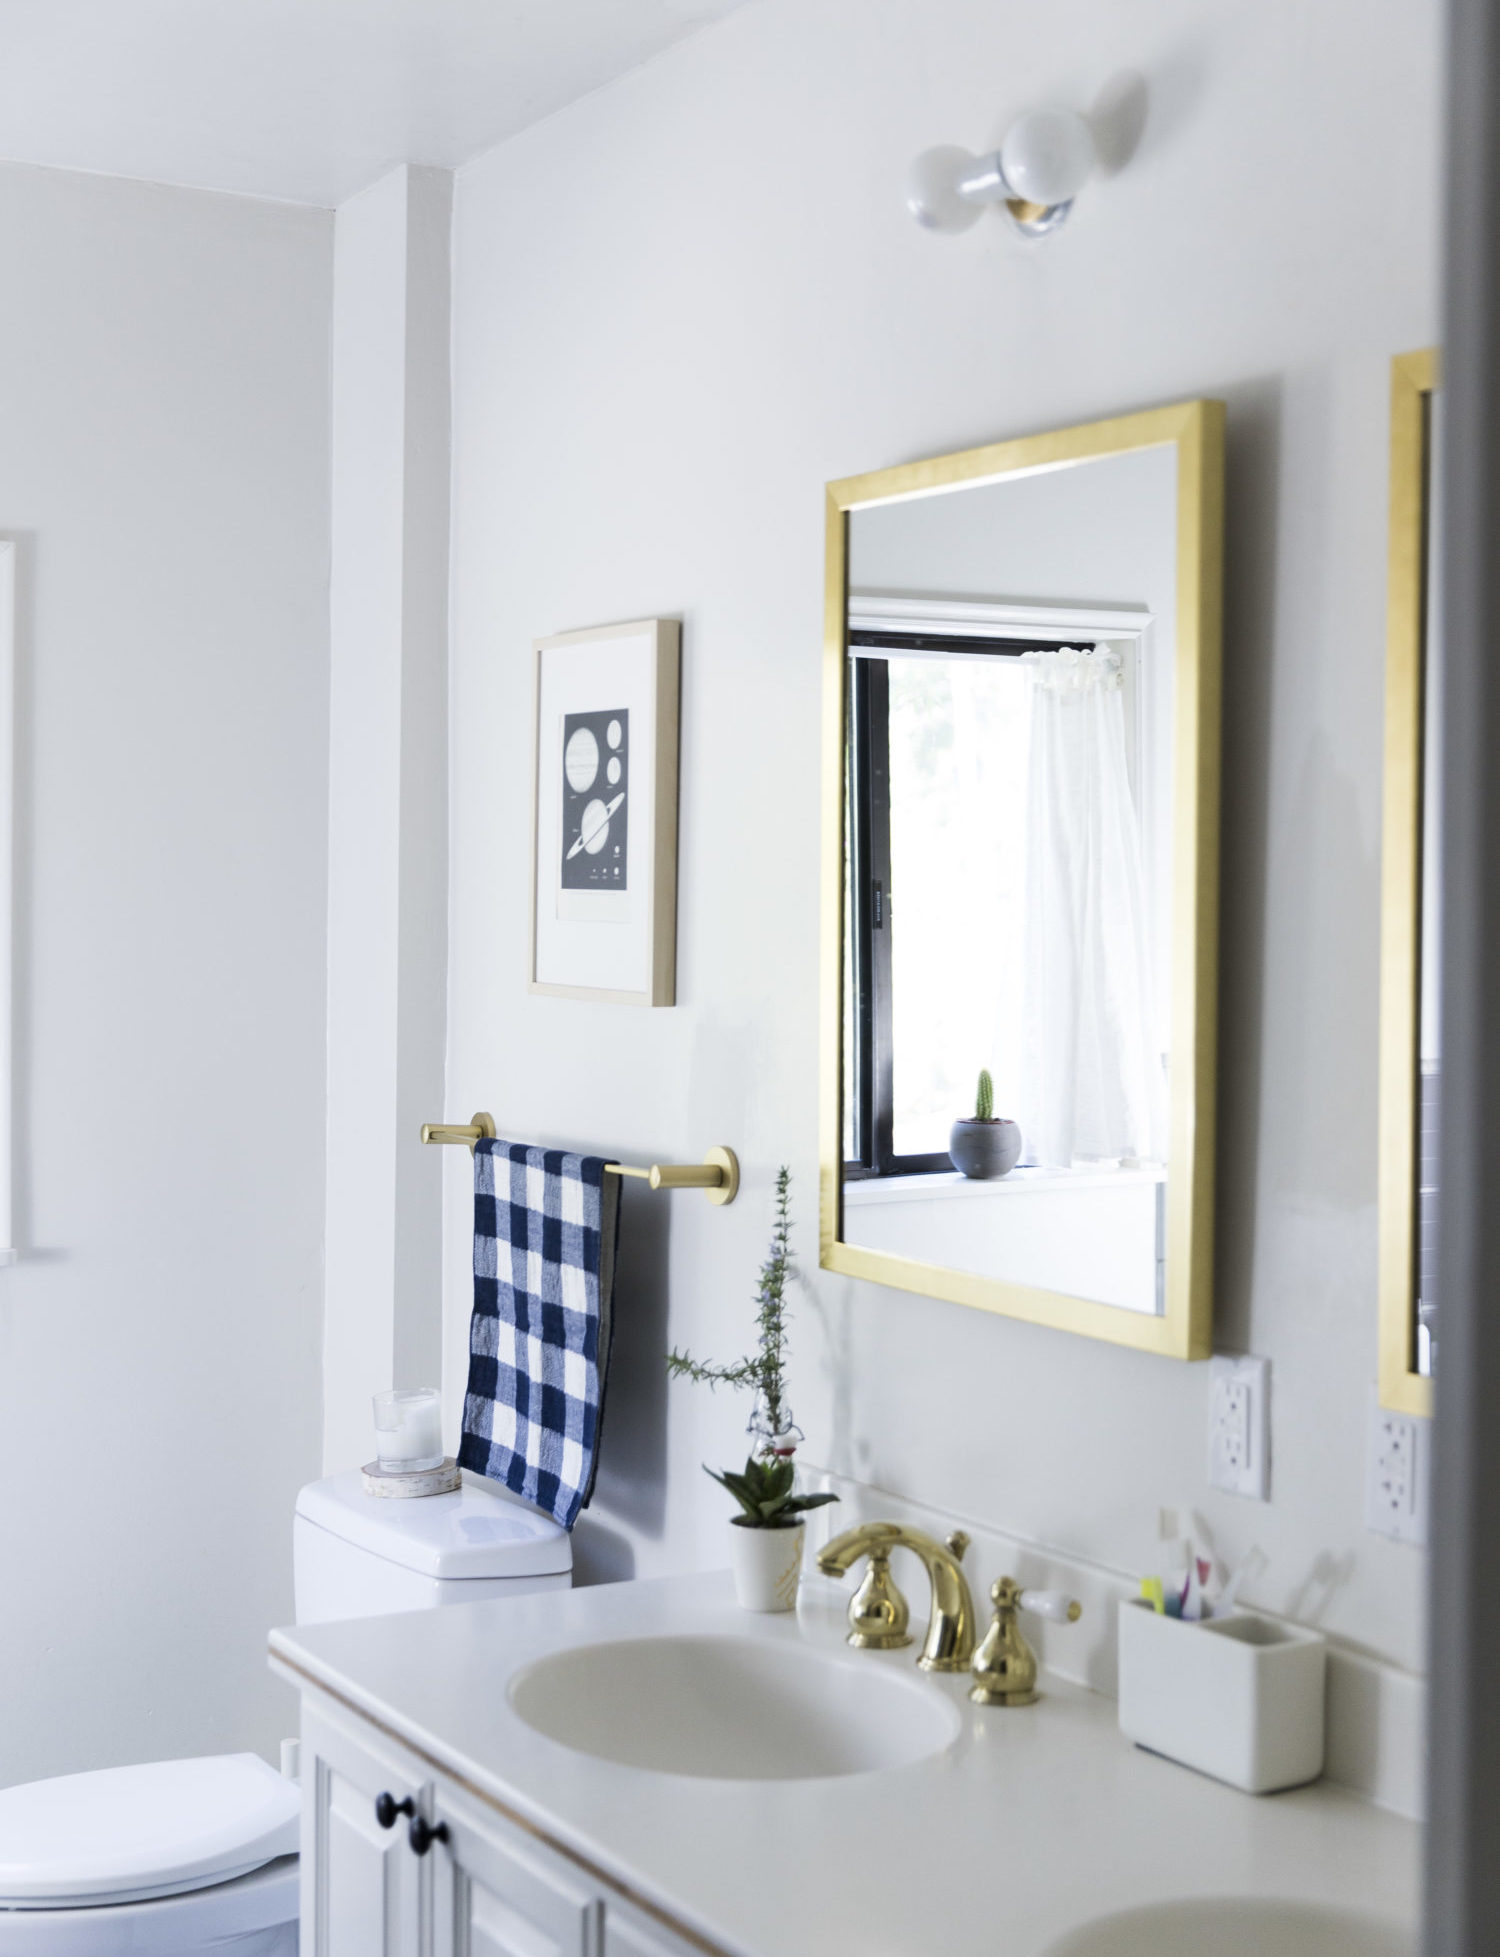 A Bathroom Update - Say Yes